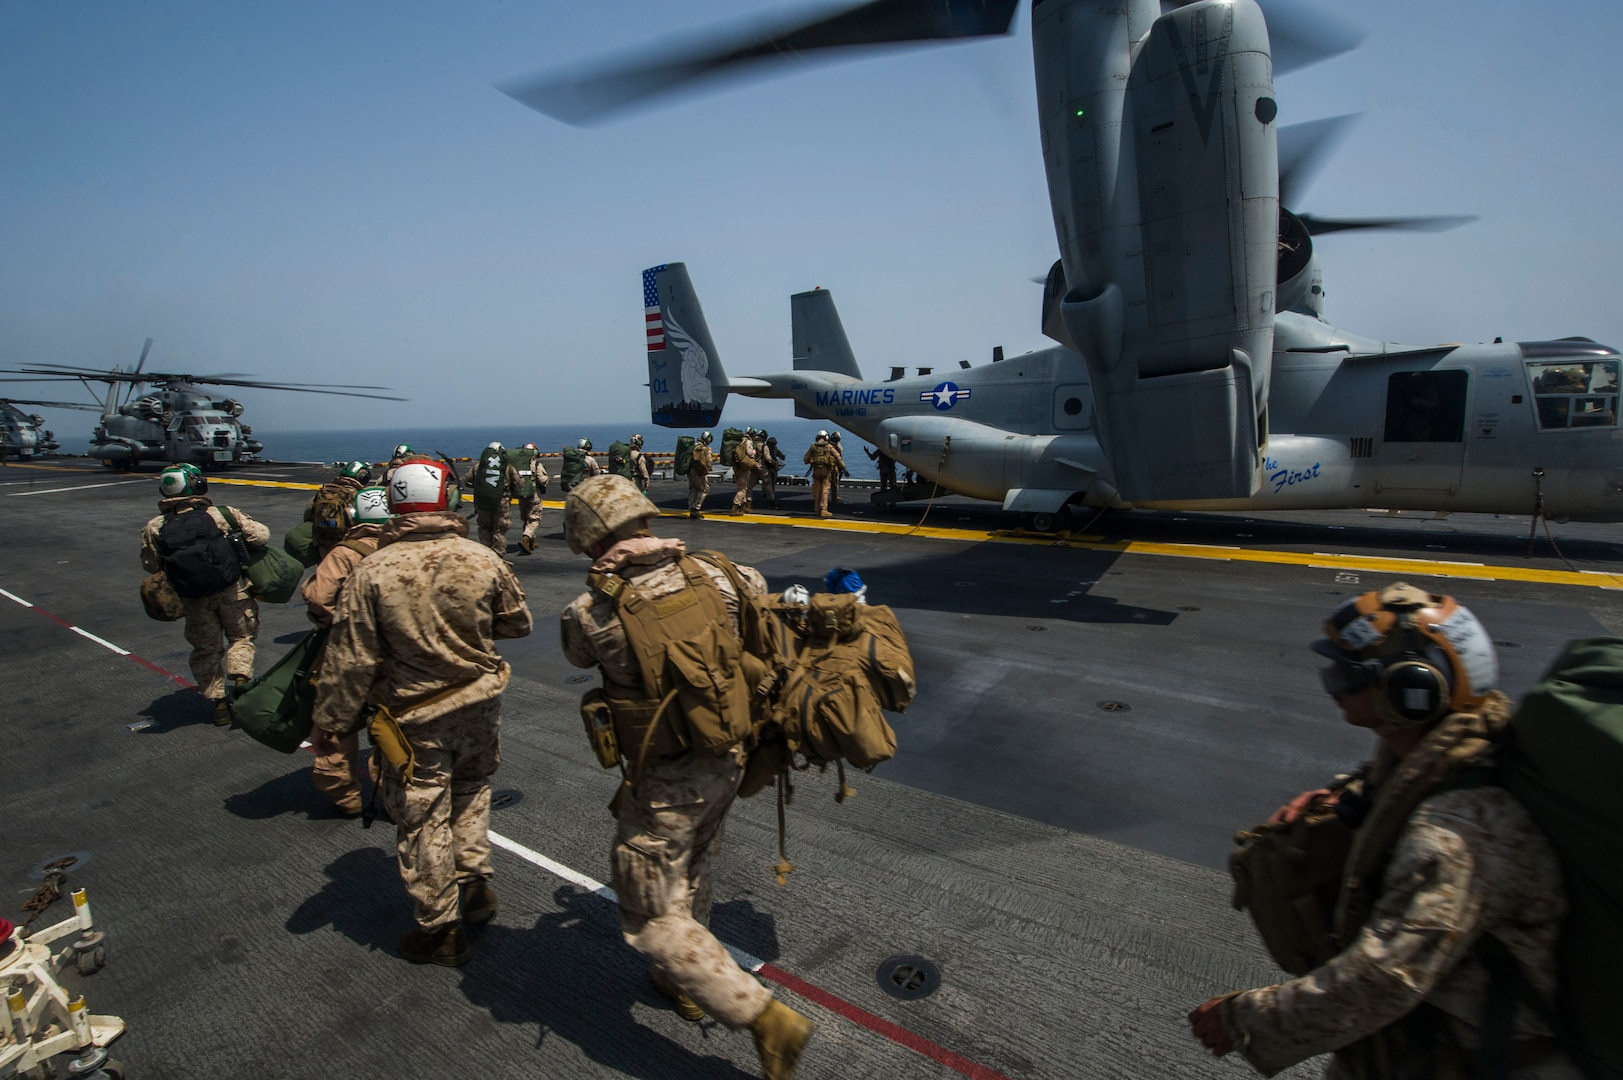 Marines assigned to the 15th Marine Expeditionary Unit aboard the amphibious assault ship USS America (LHA 6) board an MV-22 Osprey assigned to Marine Medium Tiltrotor Squadron (VMM) 161 (Reinforced) for a scheduled departure to Djibouti in support of exercise Alligator Dagger 2017. Alligator Dagger is a dedicated, unilateral combat rehearsal led by Naval Amphibious Force, Task Force 51/5th Marine Expeditionary Brigade, in which combined Navy and Marine Corps units of the America Amphibious Ready Group and embarked 15th Marine Expeditionary Unit are to practice, rehearse and exercise integrated capabilities that are available to U.S. Central Command both afloat and ashore. (U.S. Navy photo by Mass Communication Specialist Seaman Apprentice Chad Swysgood/Released)